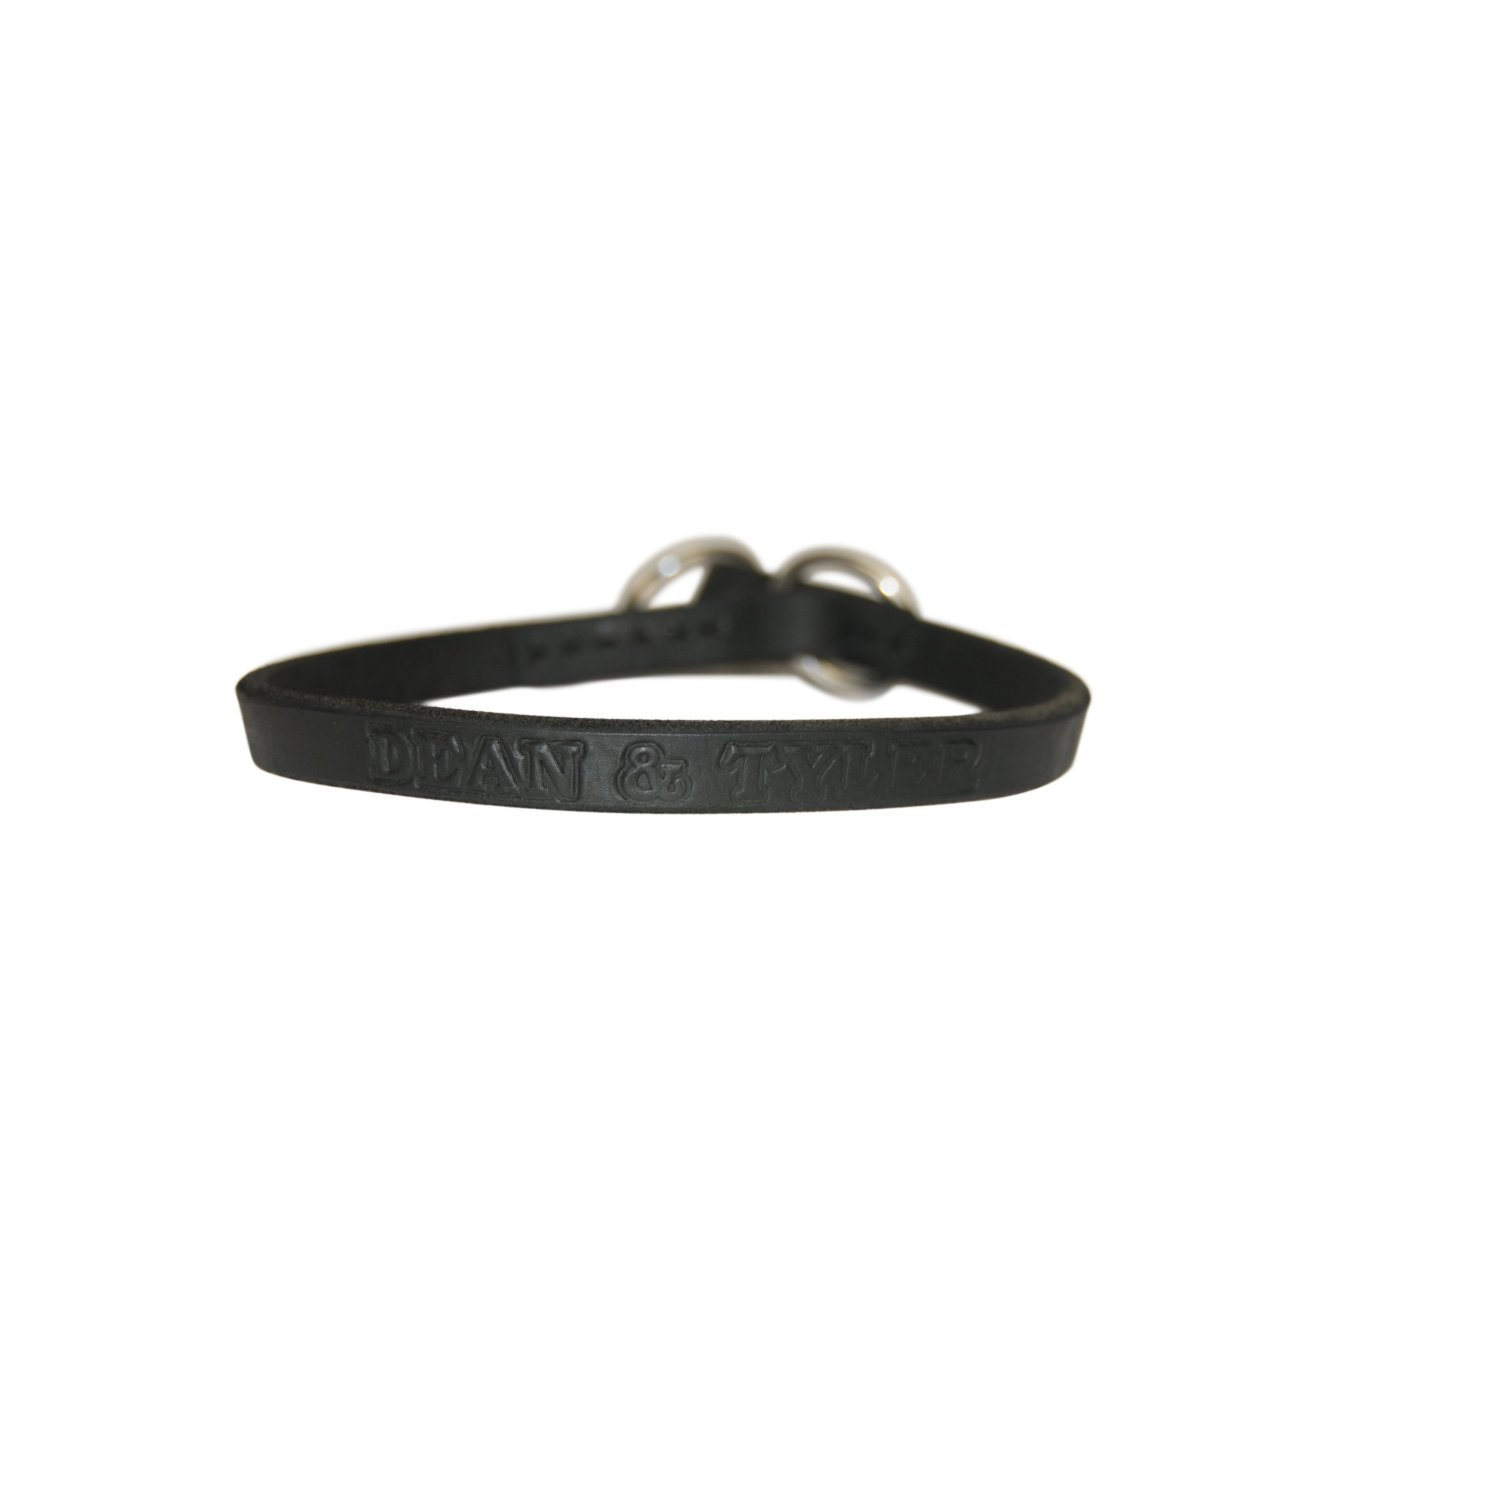 Dean and Tyler TRANQUILITY , Leather Dog Choke Collar with Stainless Steel Hardware Black Size 36-Inch by 3 4-Inch Fits Neck 34-Inch to 36-Inch